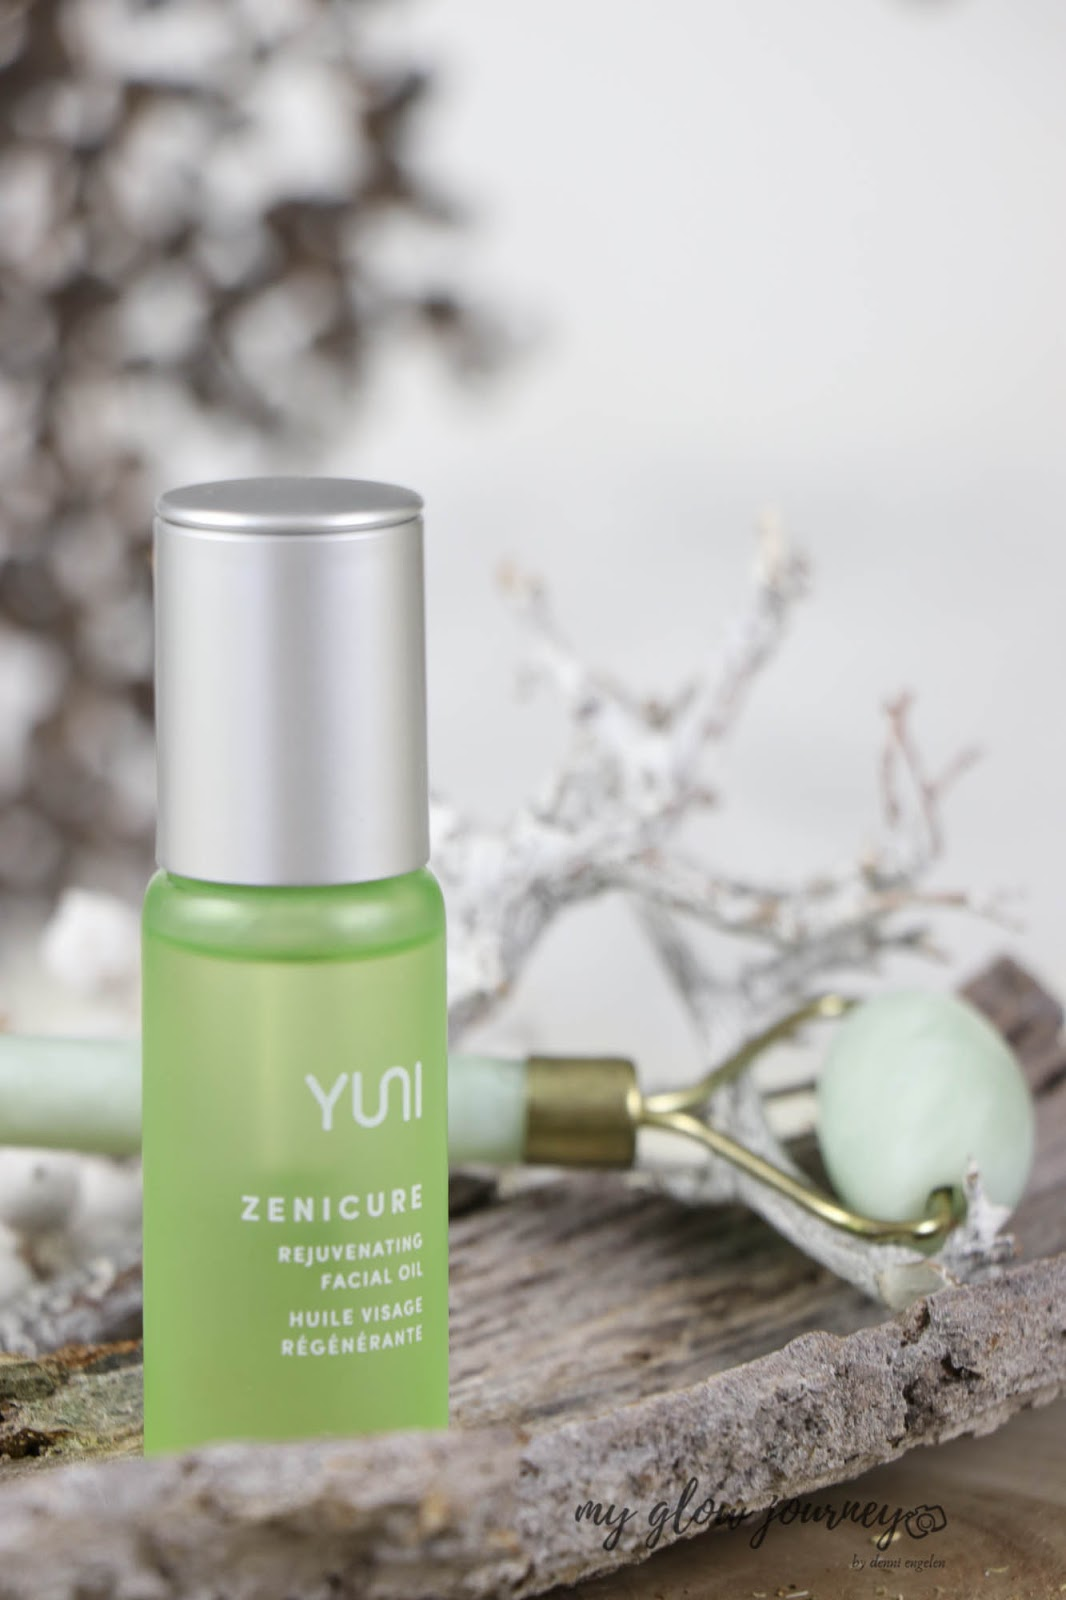 ZENICURE Rejuvenating Facial Oil